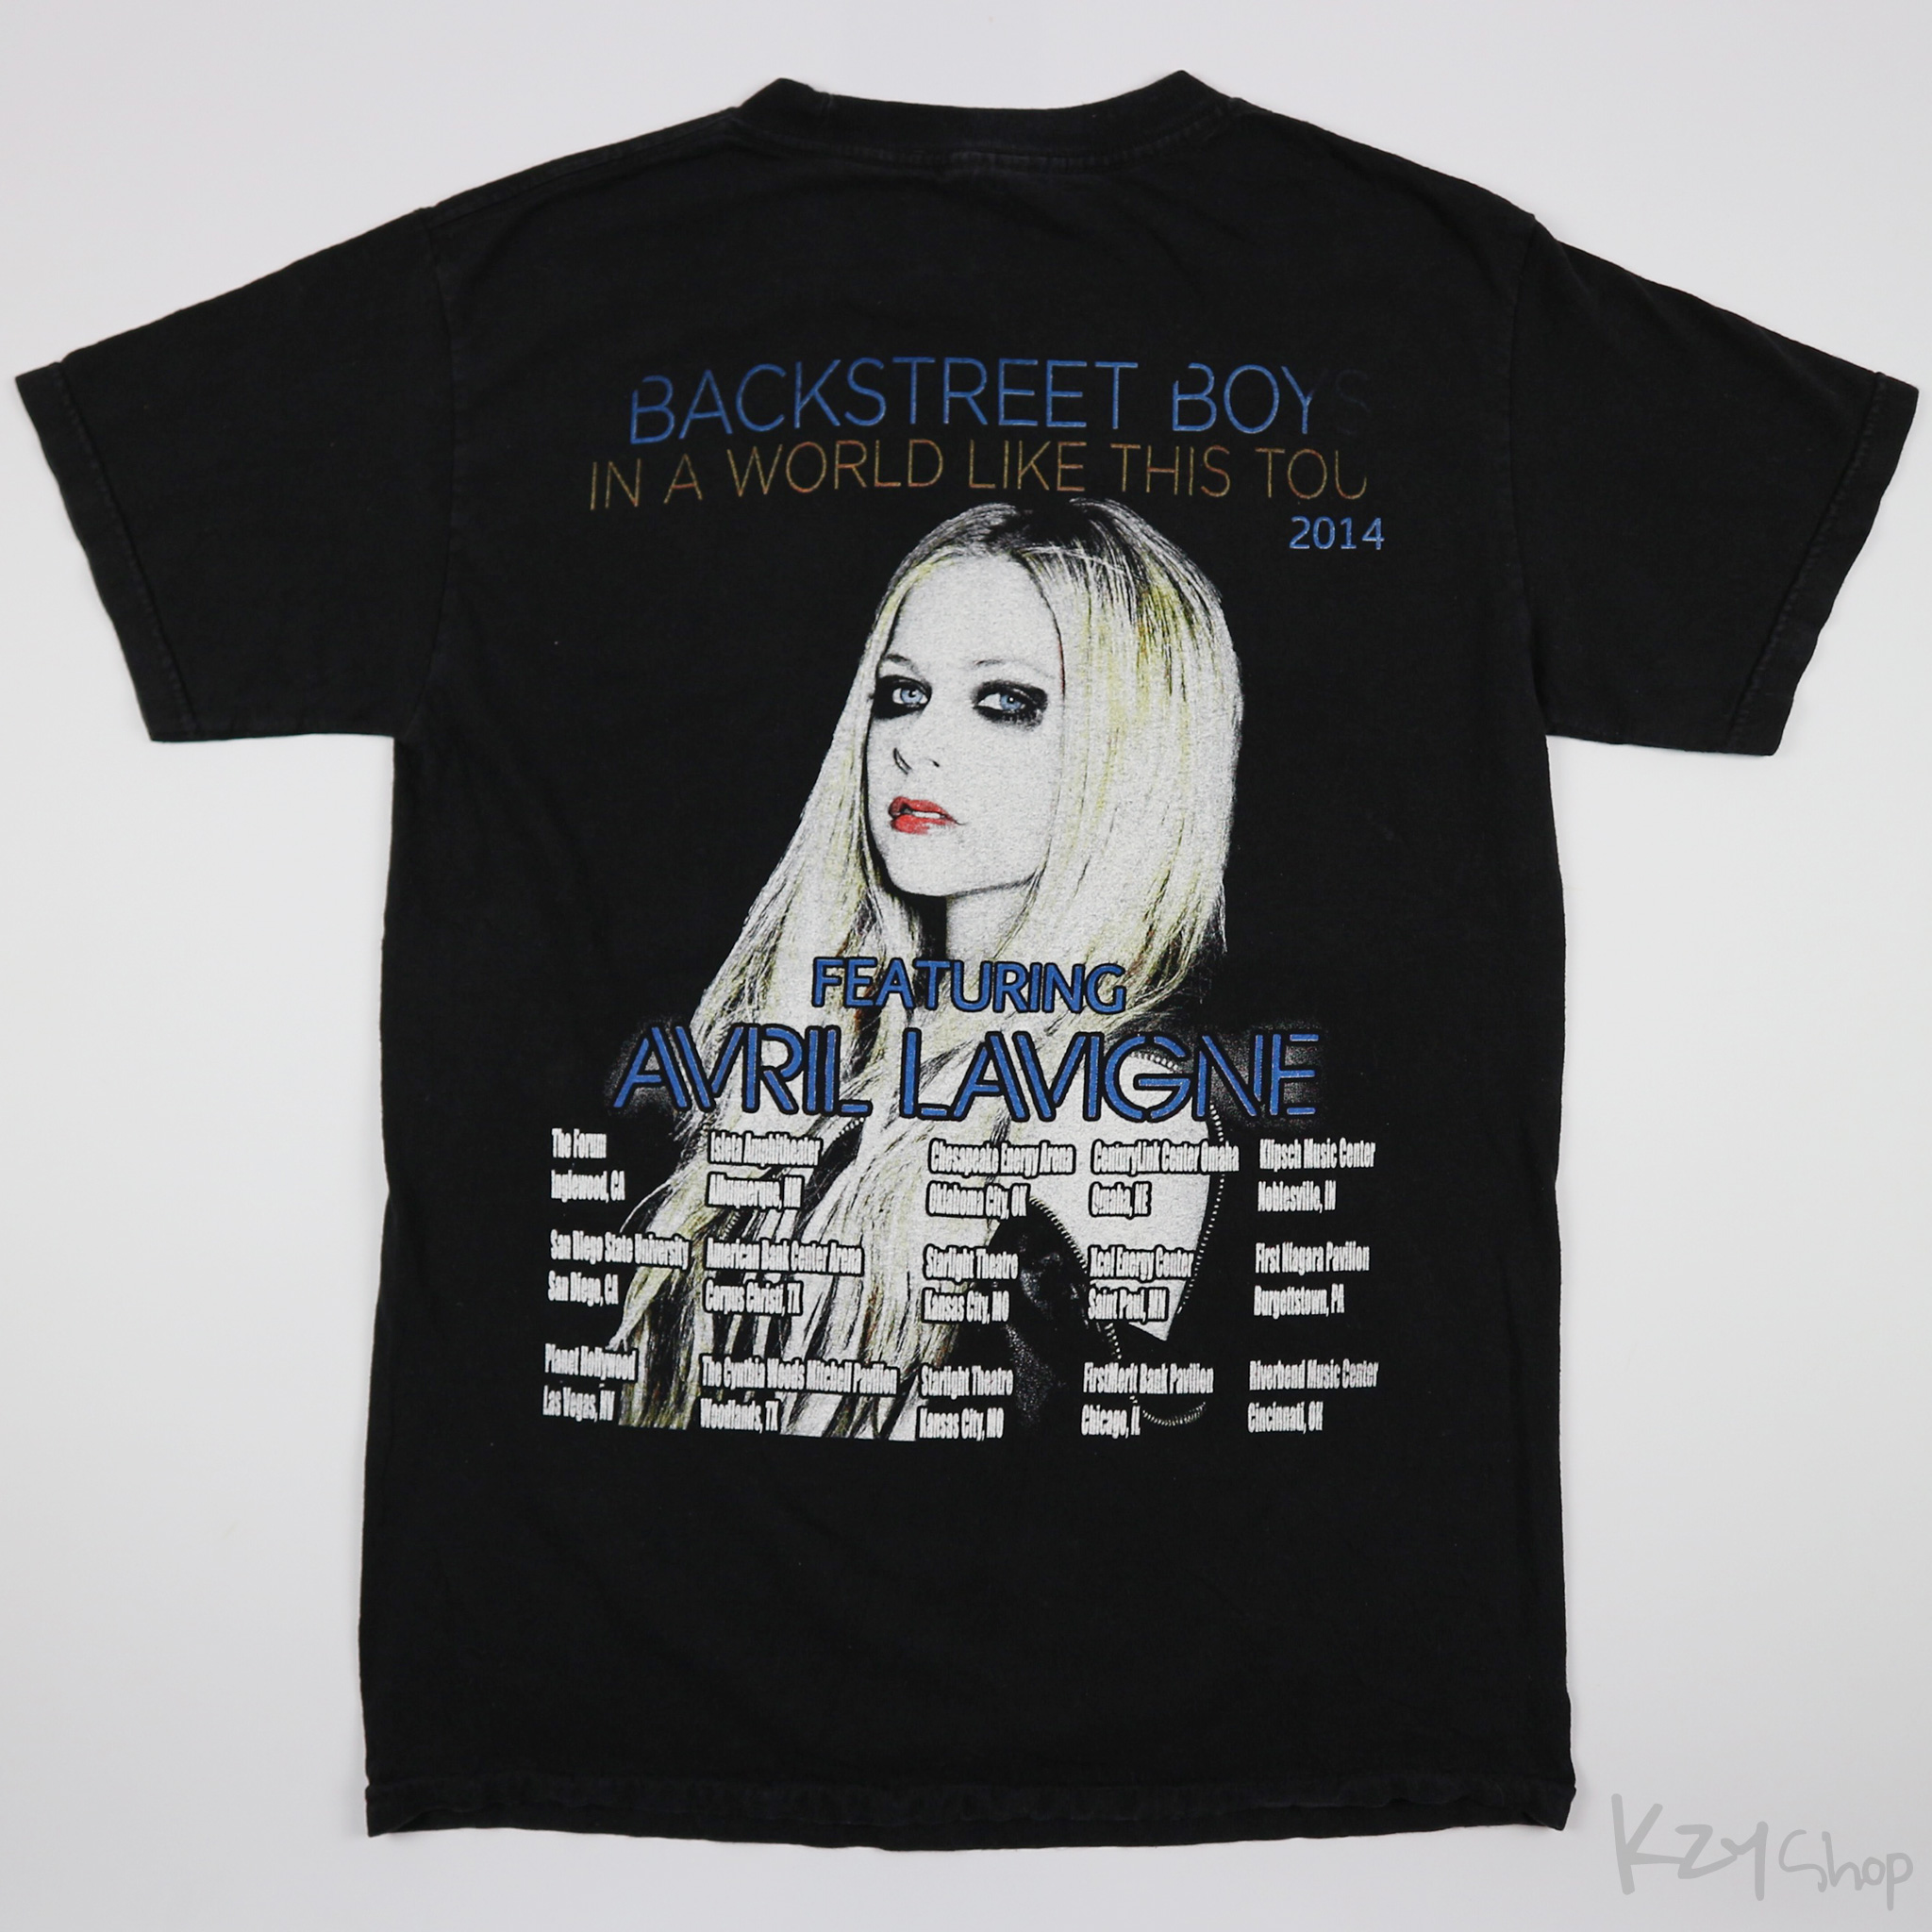 เสื้อยืด BACKSTREET BOYS IN A WORLD LIKE THIS TOUR 2014 FEATURING AVRIL LAVIGNE